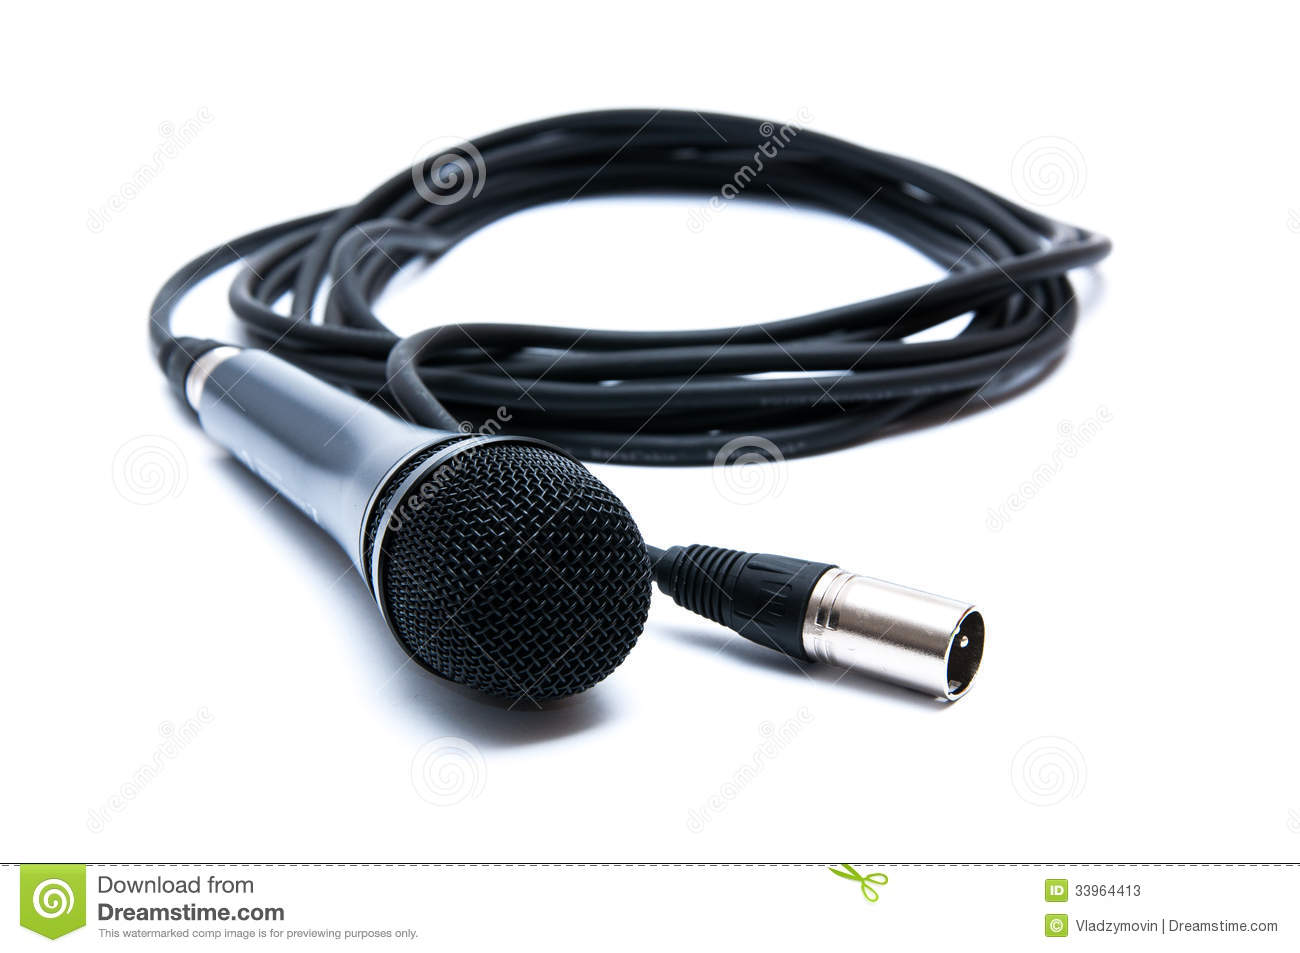 Microphone With Cord : Black microphone with a cord on white background stock